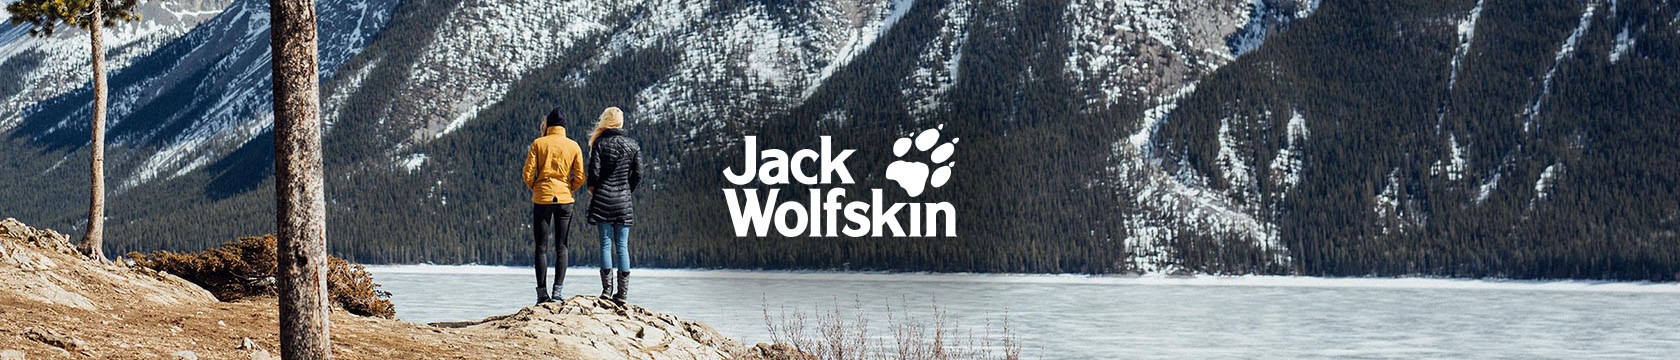 Two people in Jack Wolfskin gear standing by the lake among mountains that are covered by trees and snow.